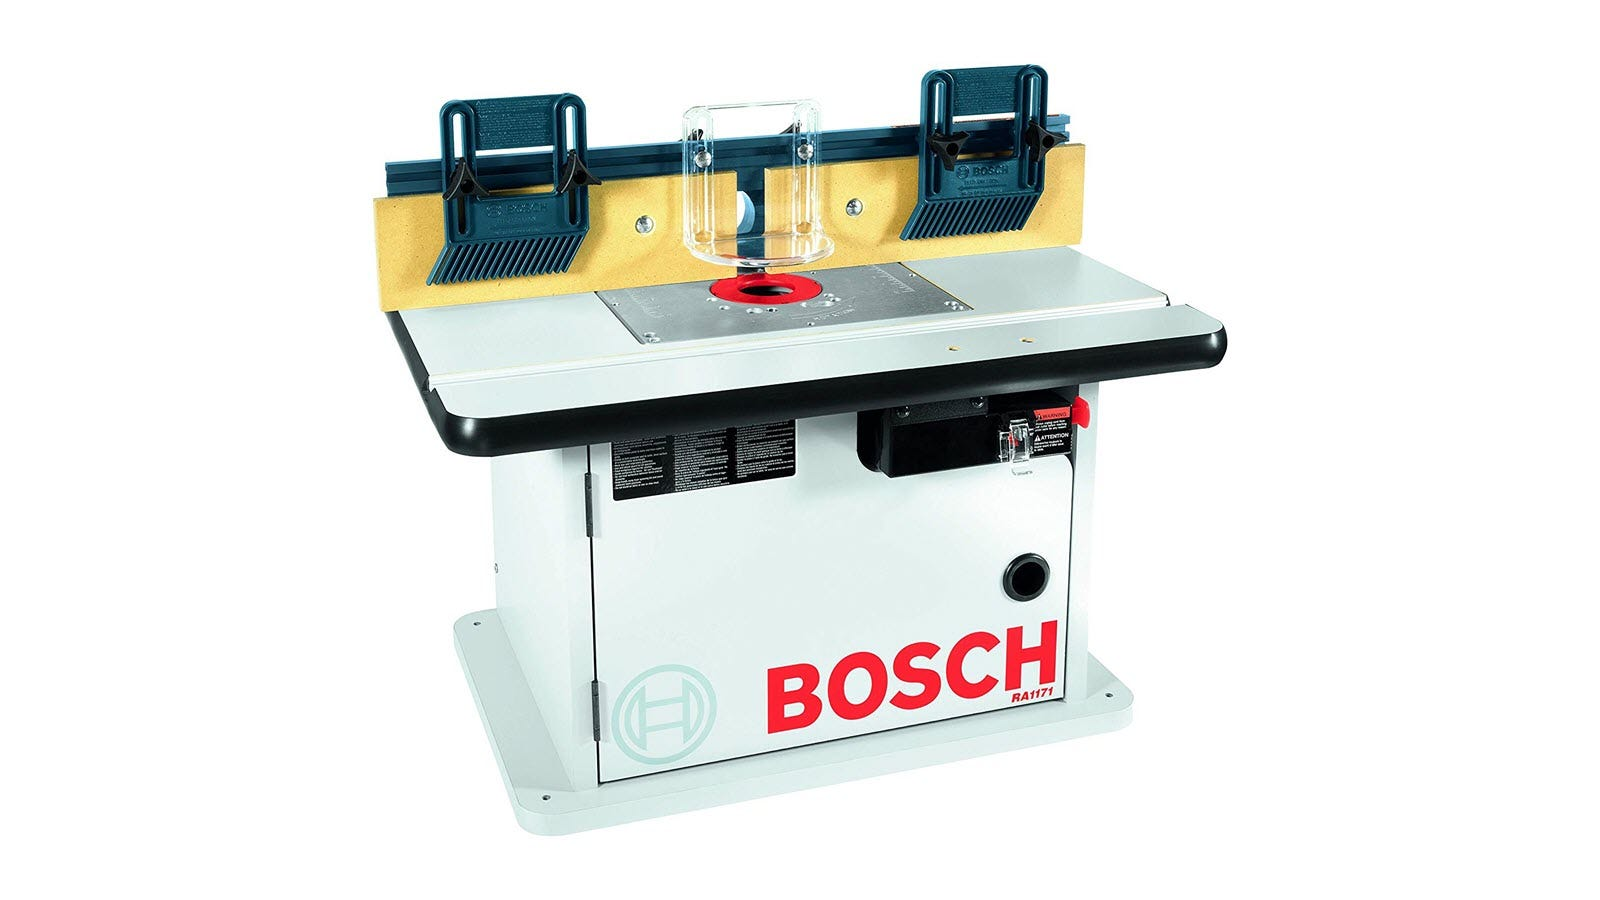 A Bosch cabinet style router table, with metal base plate.